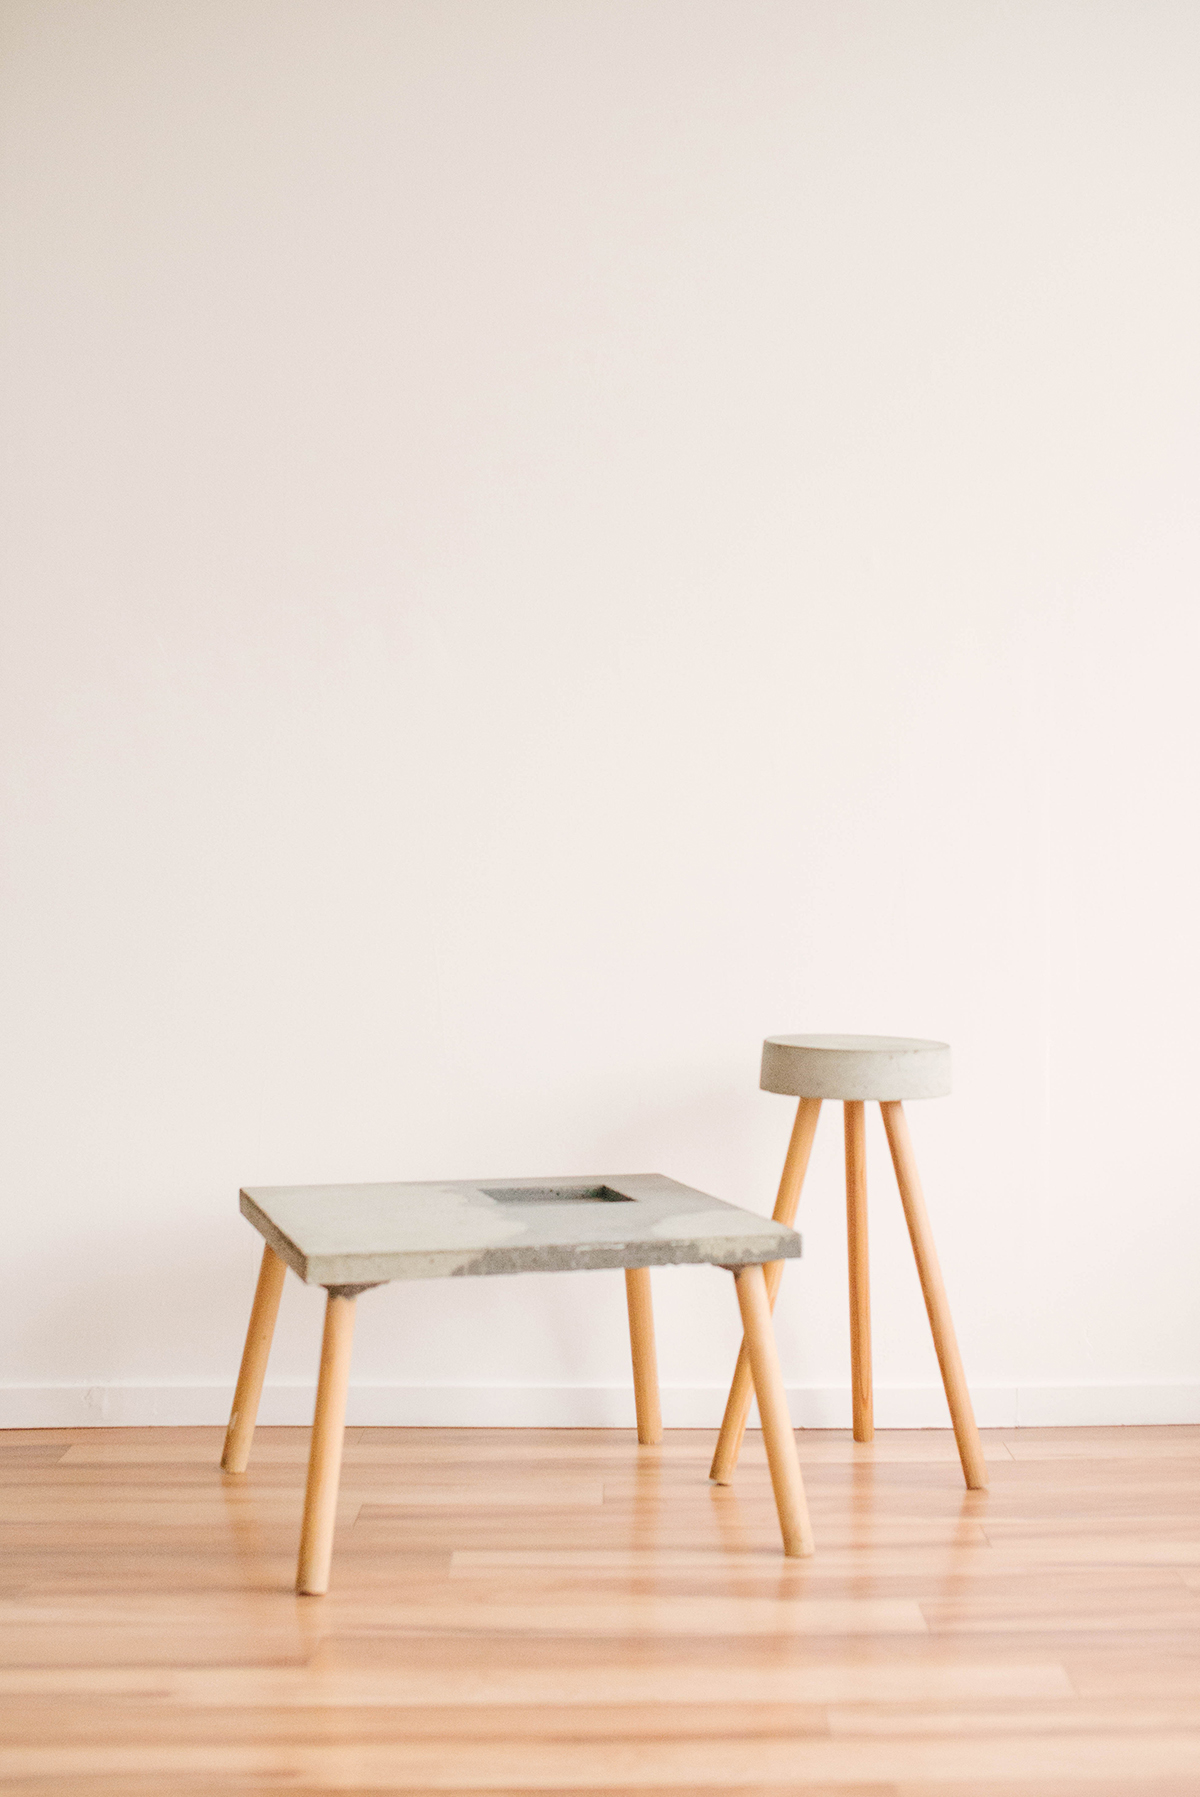 Concrete Table & Stool